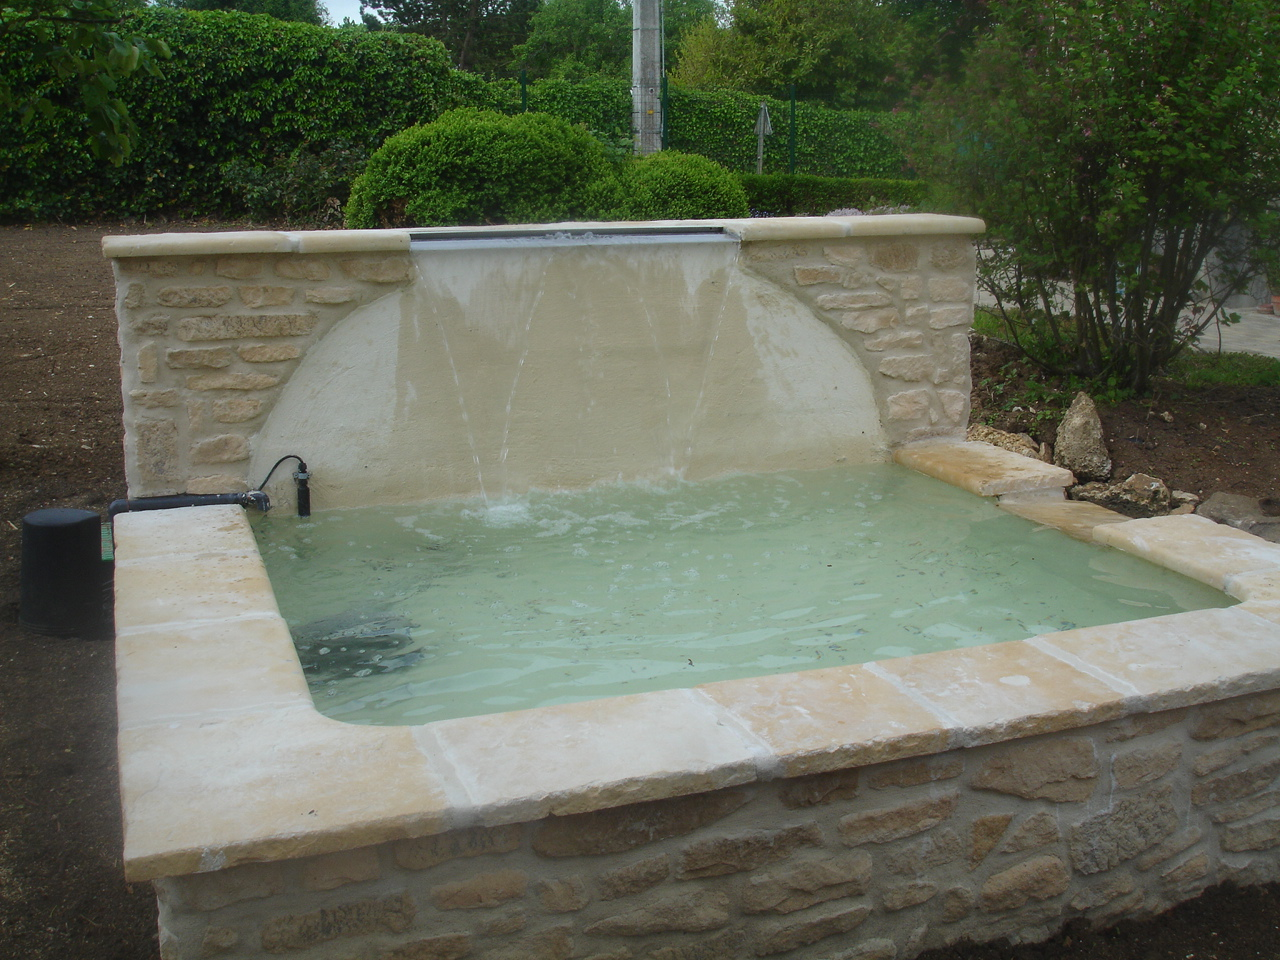 Bassins prat paysages for Piscine 02400